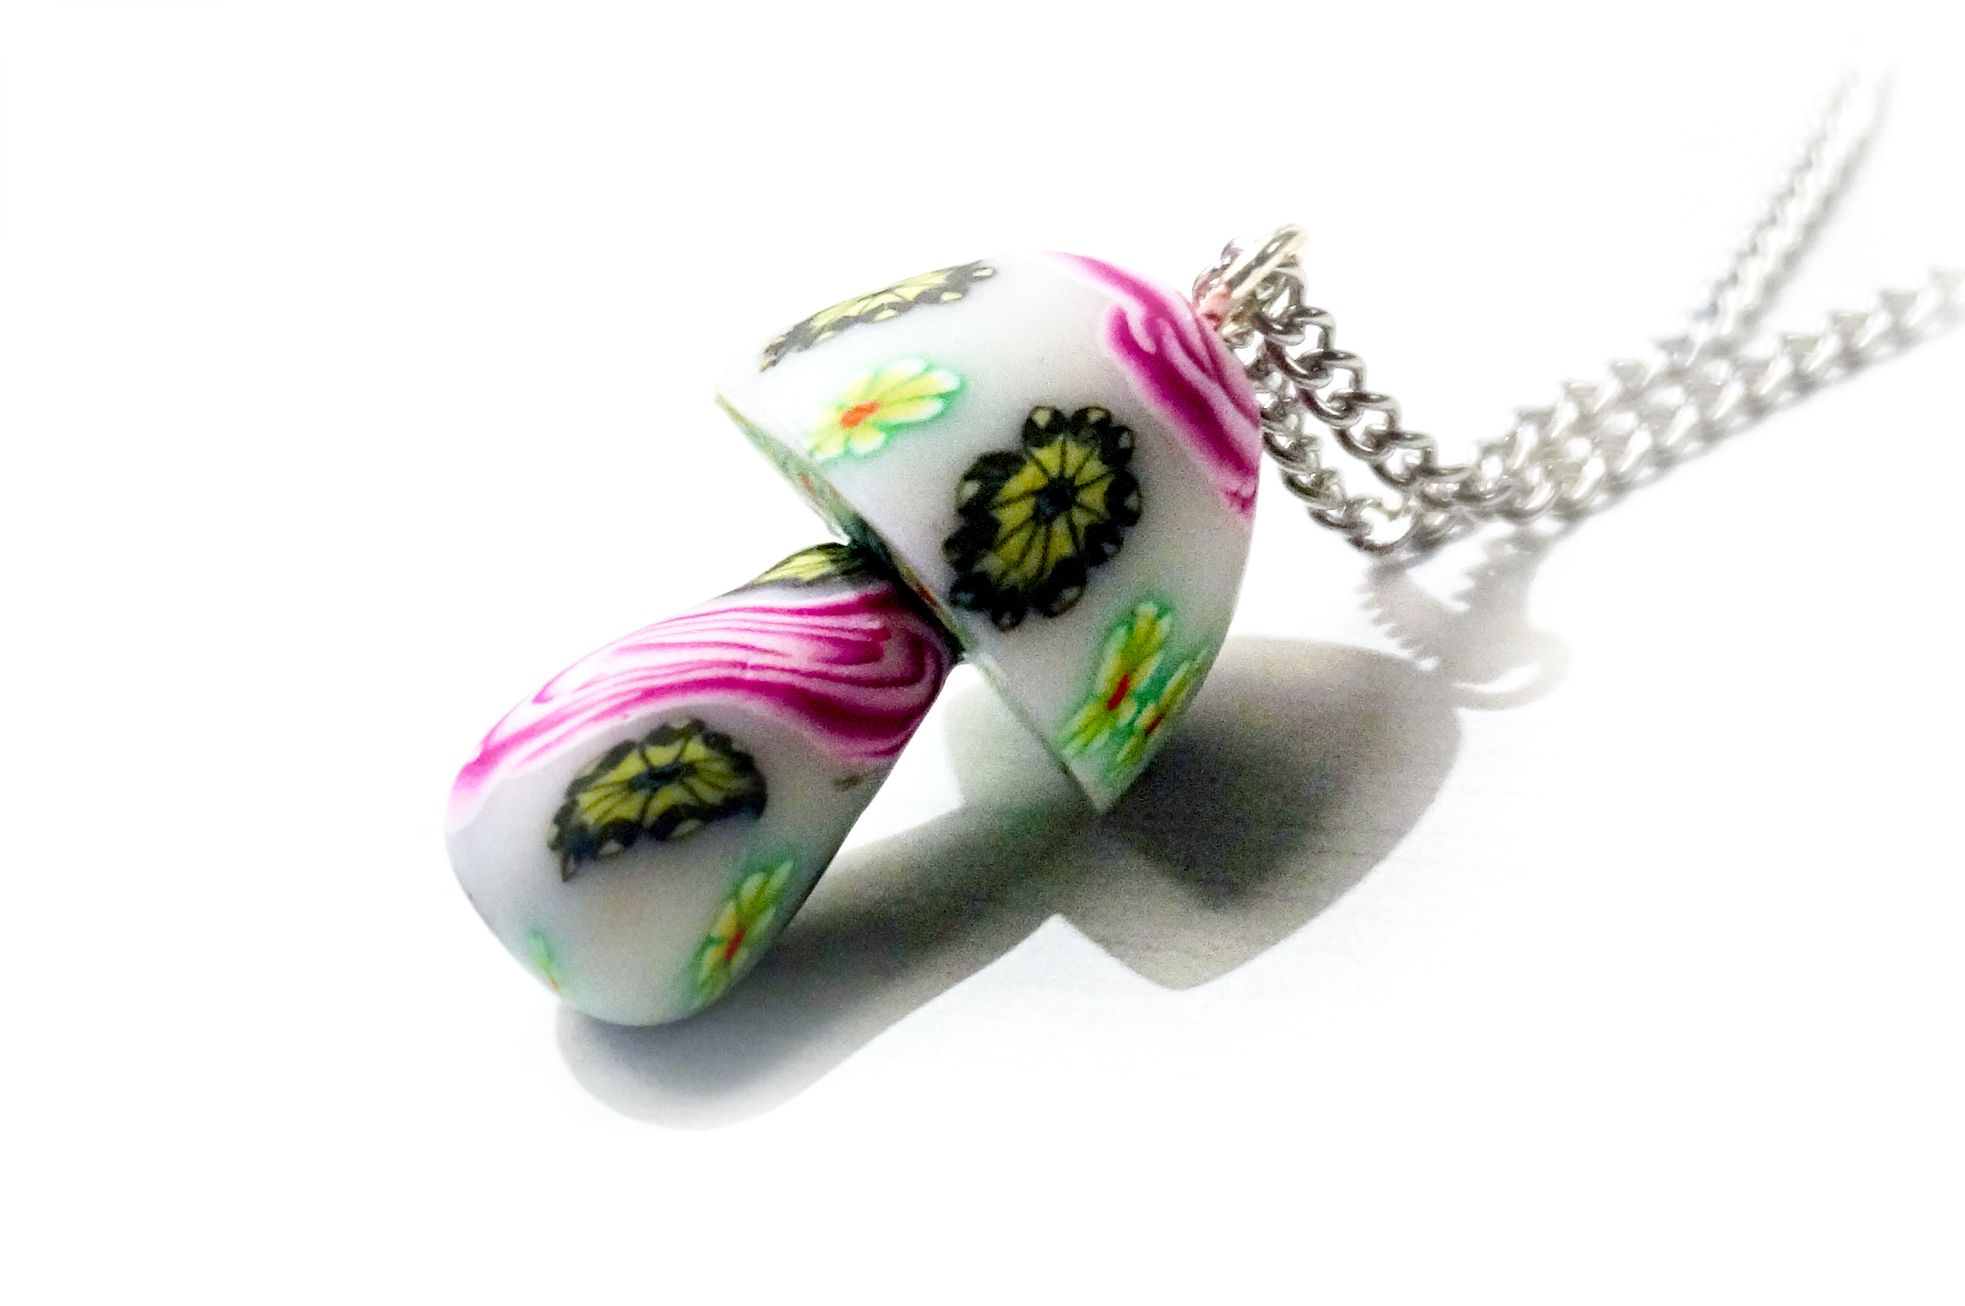 hippies clothing mushrooms necklace psychedelic trance boho chic